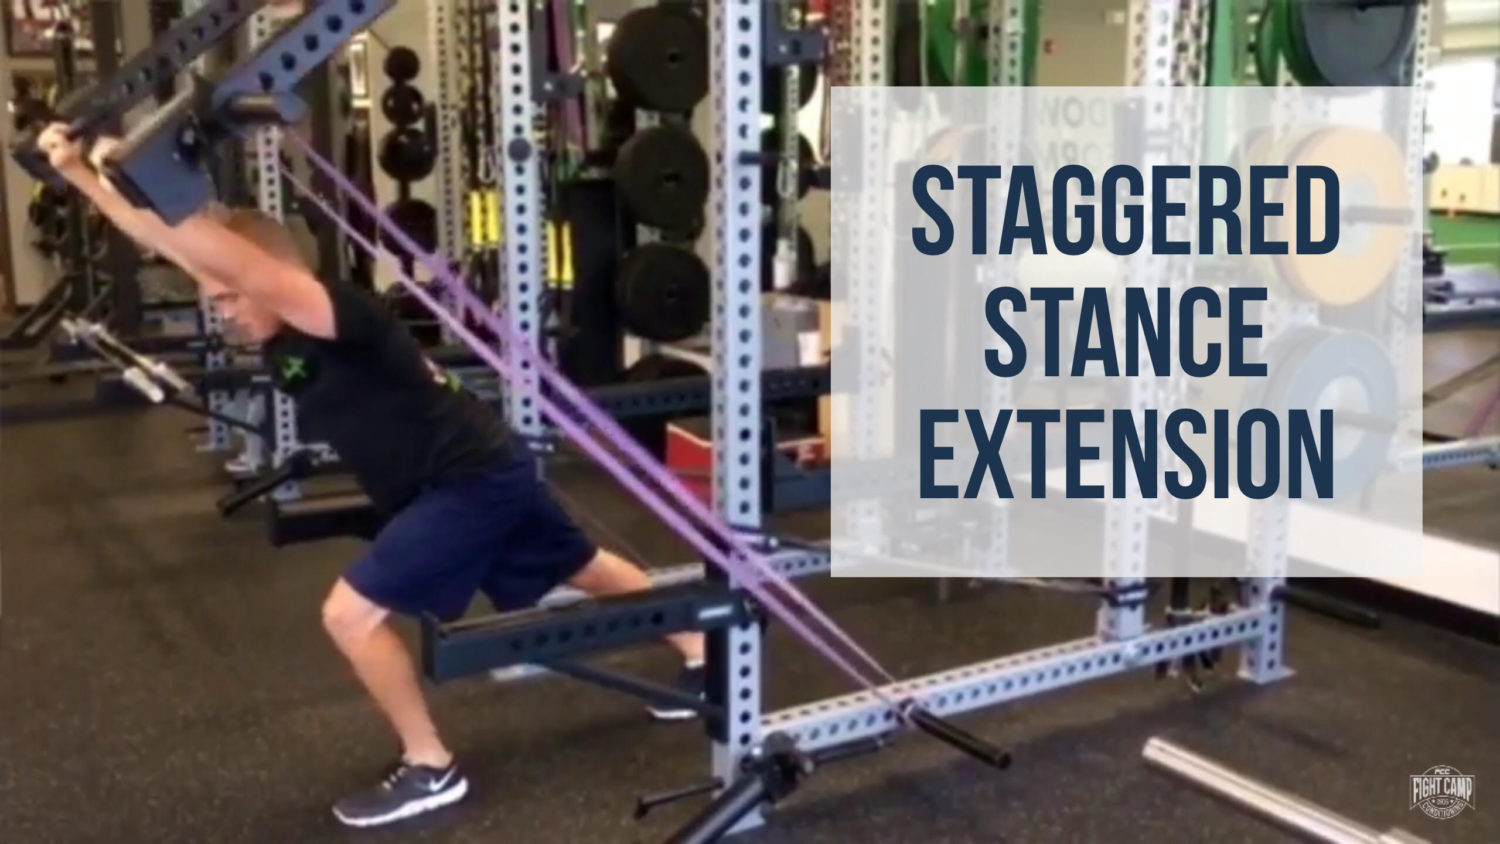 Staggered Stance Extension